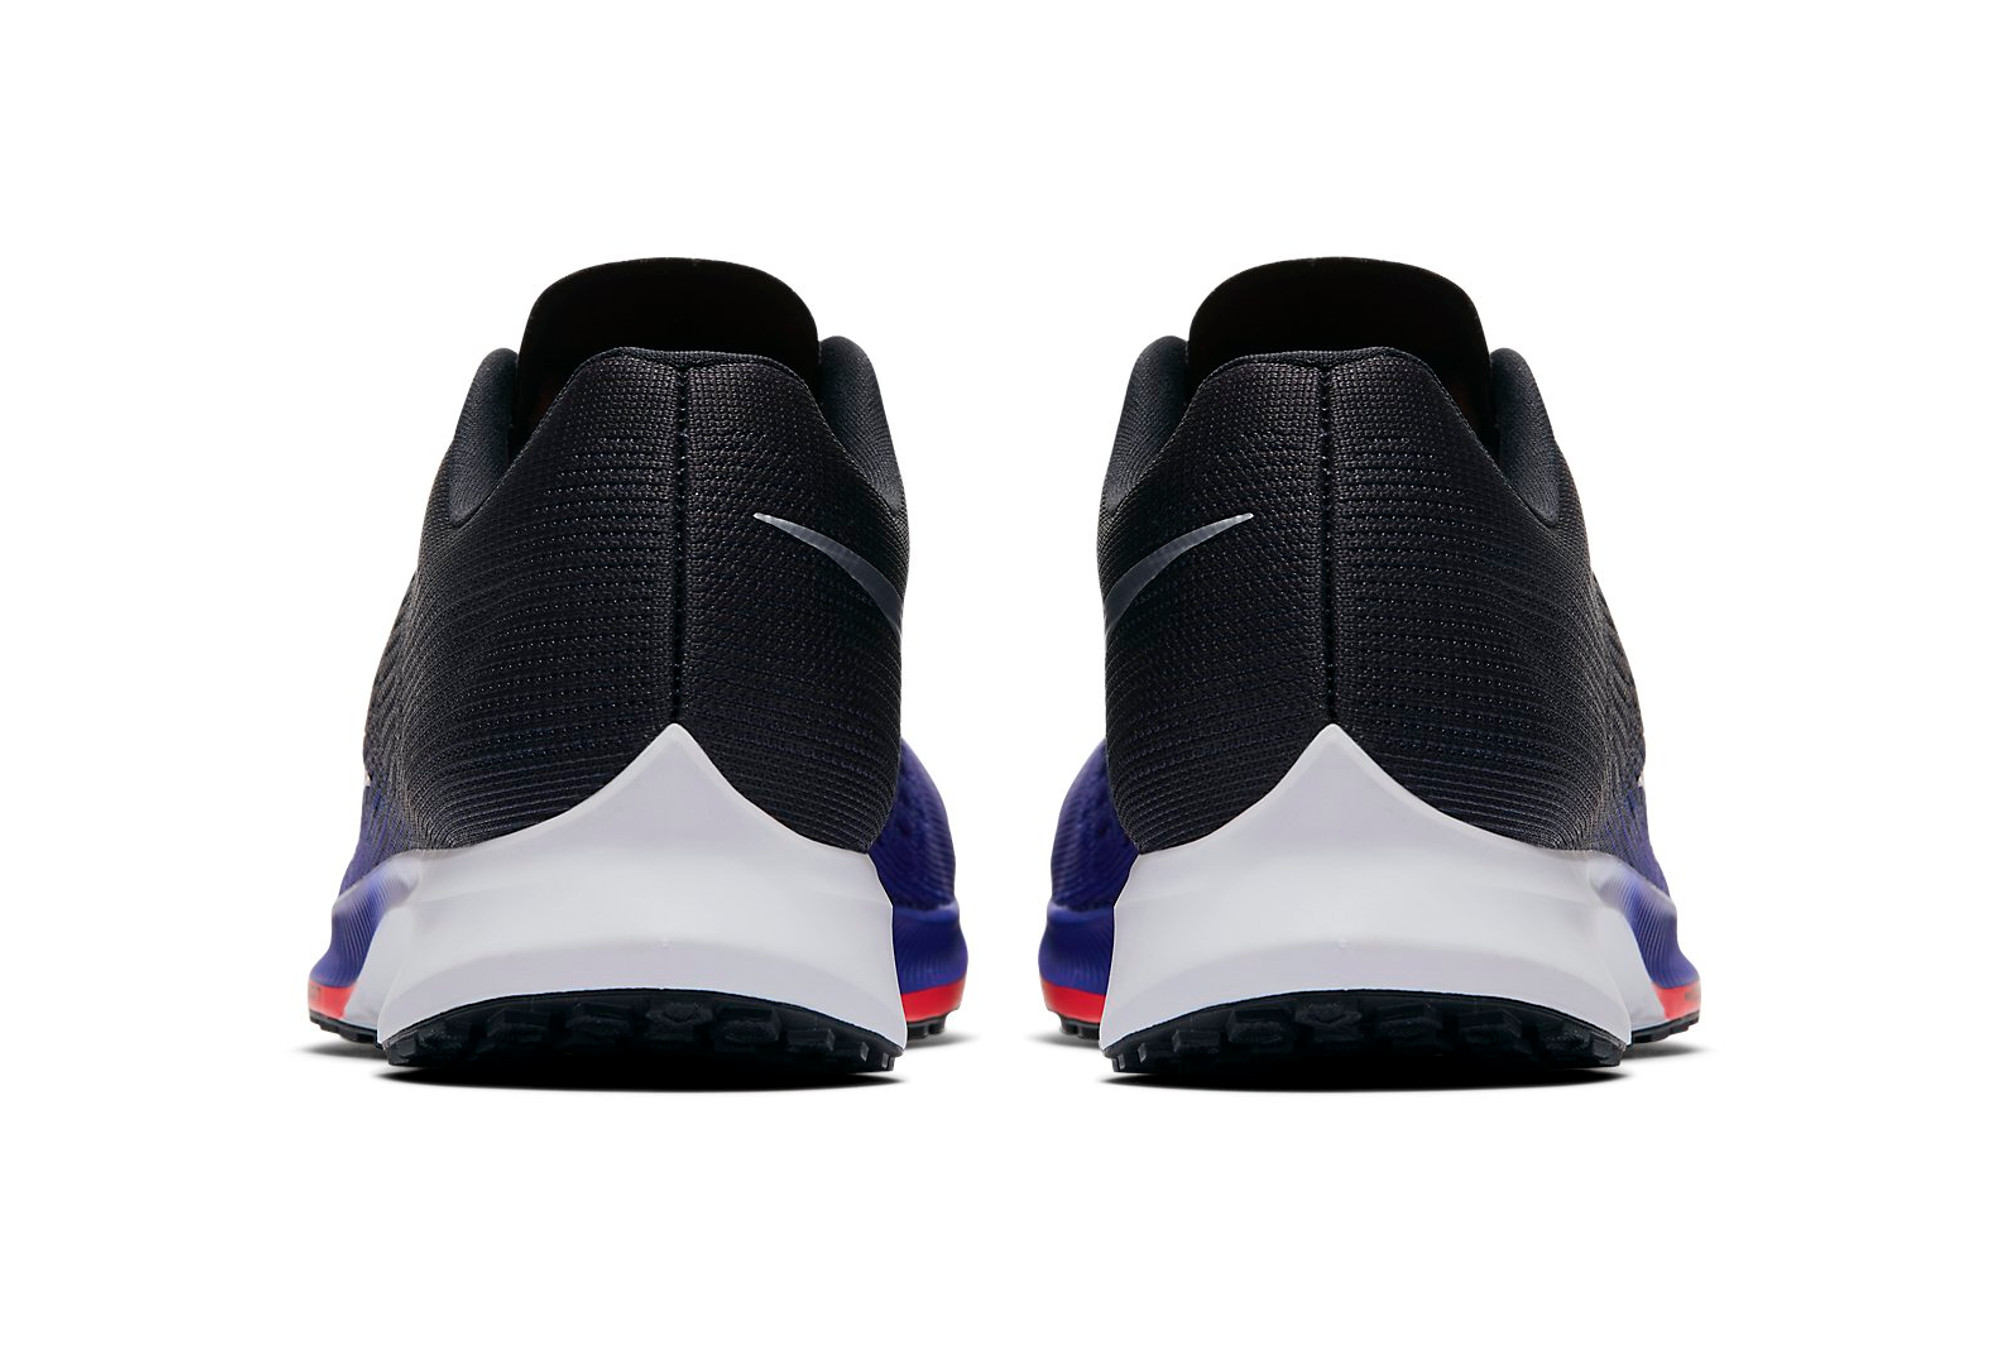 Violet Nike Air Chaussures 9 Triathlon De Noir Elite Zoom SqqwE8t4n